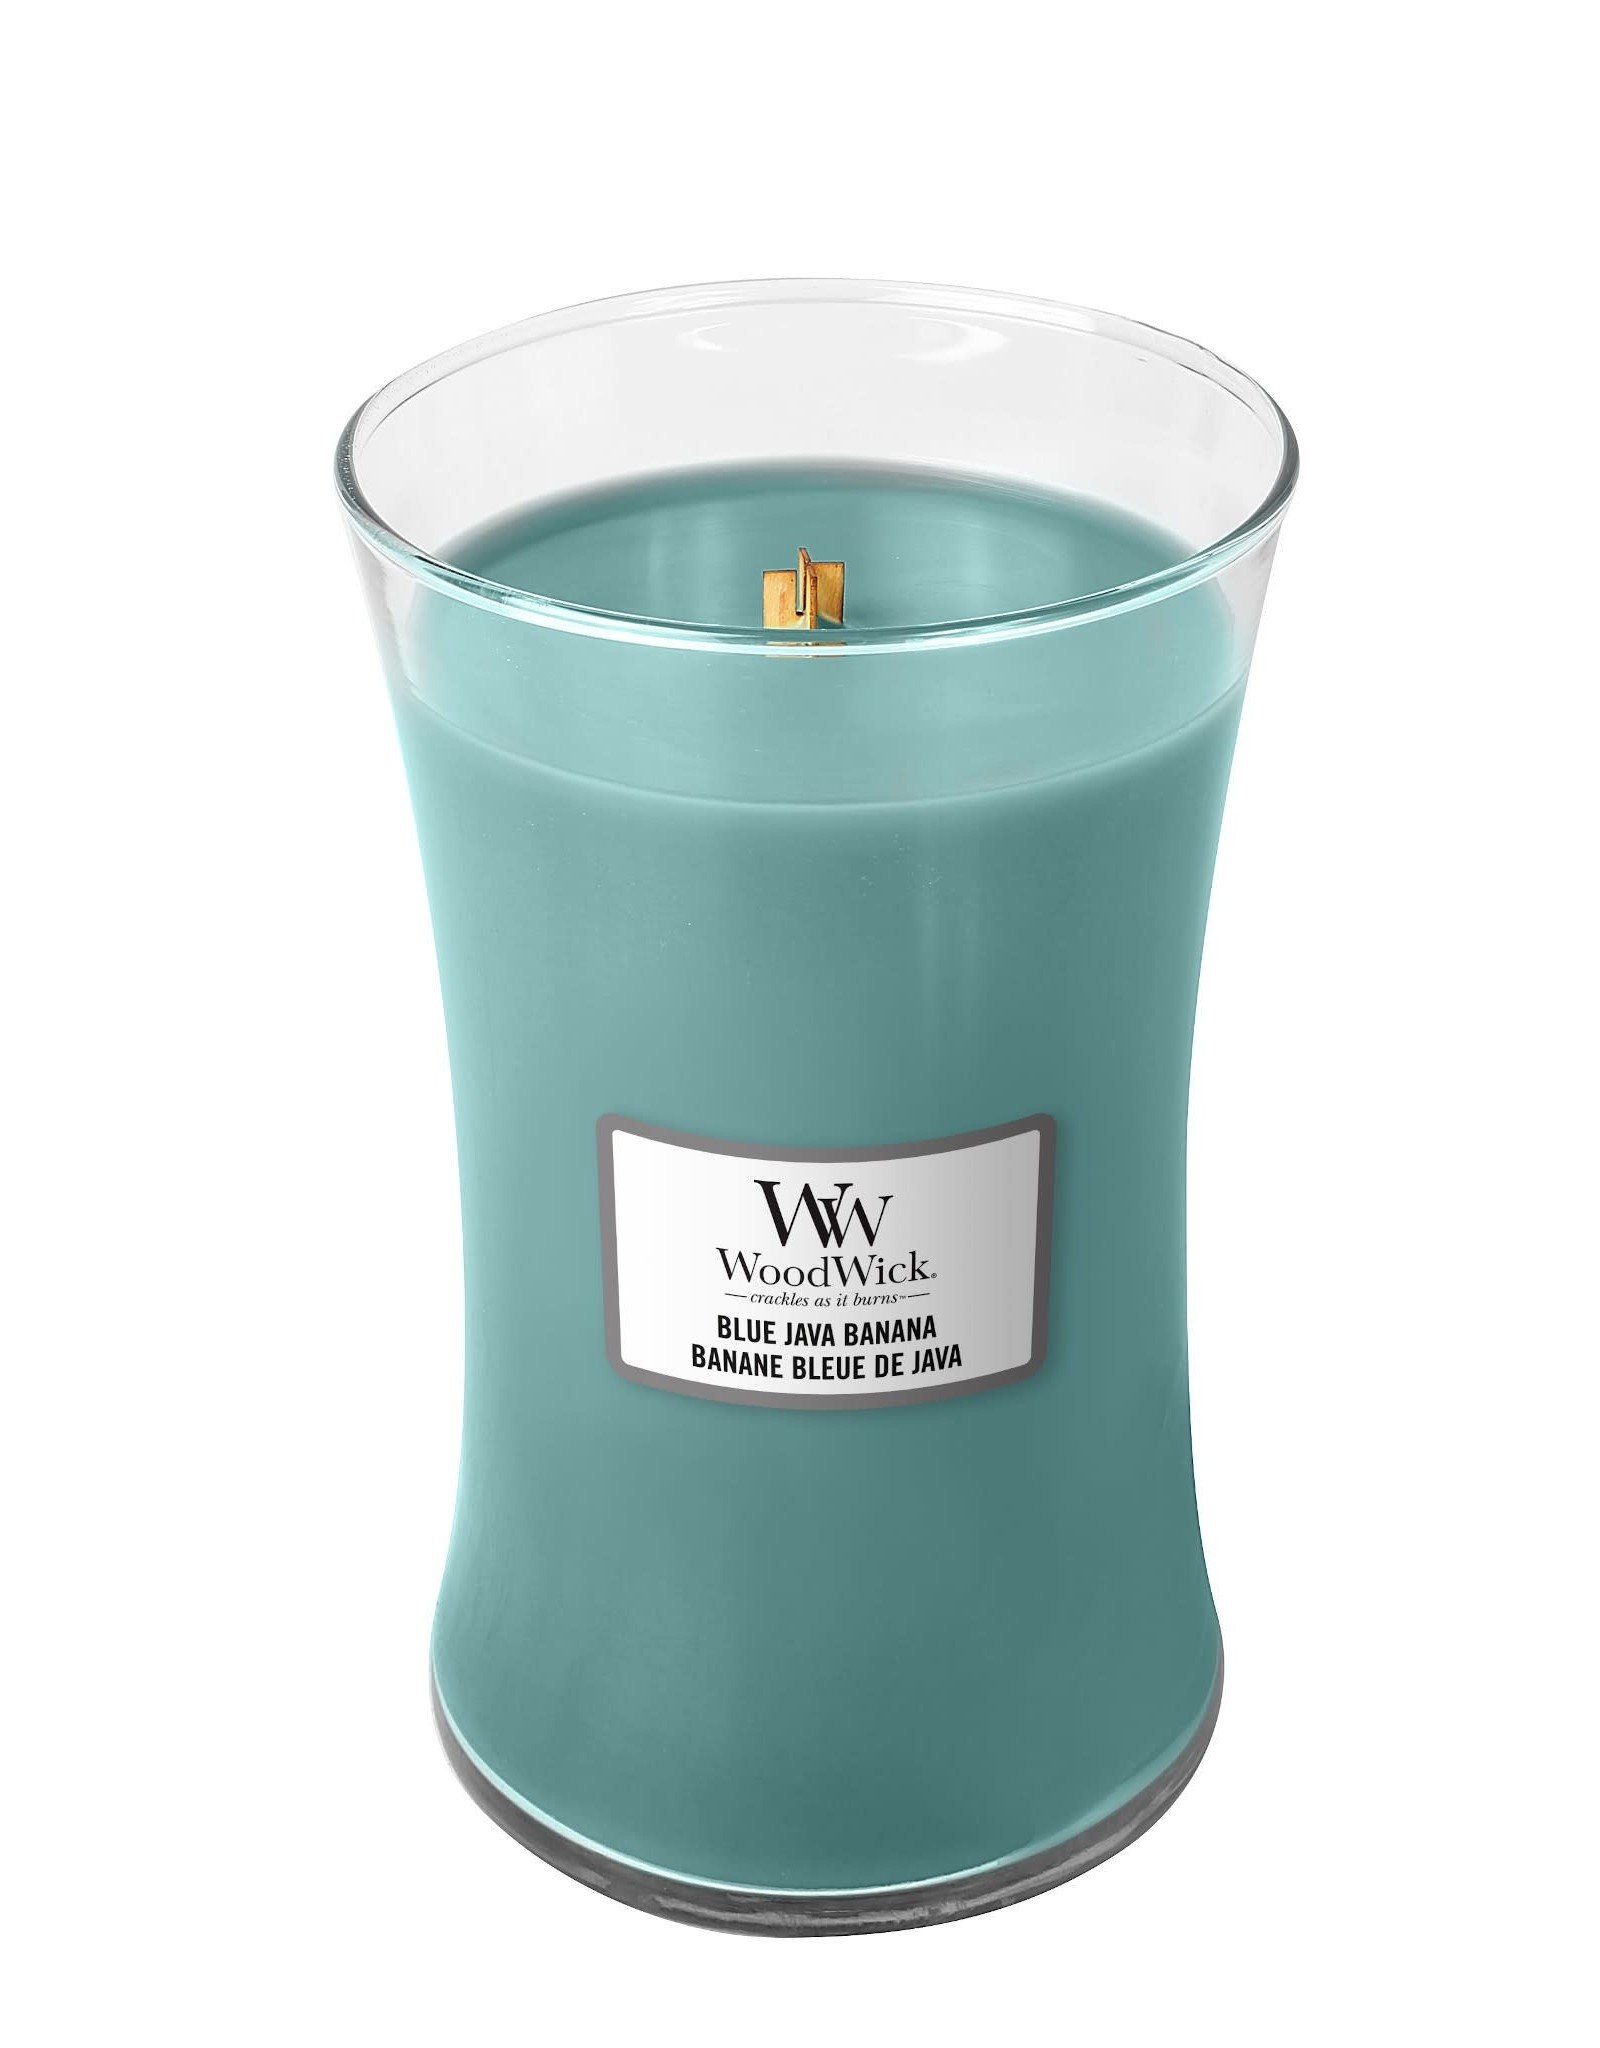 WoodWick woodwick blue java banana